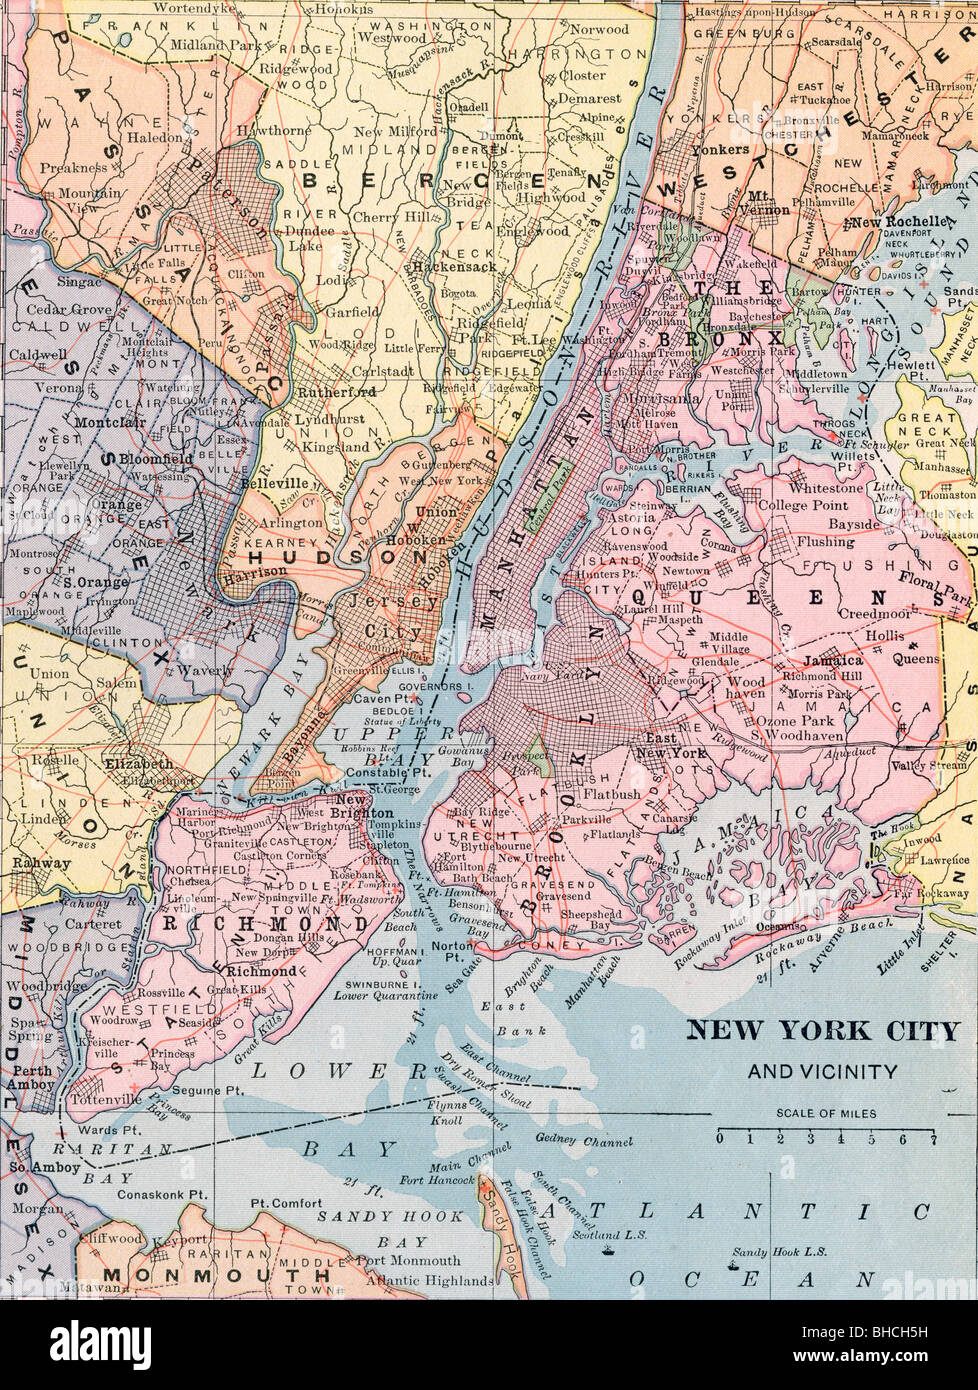 Old Map Of New York.Original Old Map Of New York City From 1903 Geography Textbook Stock